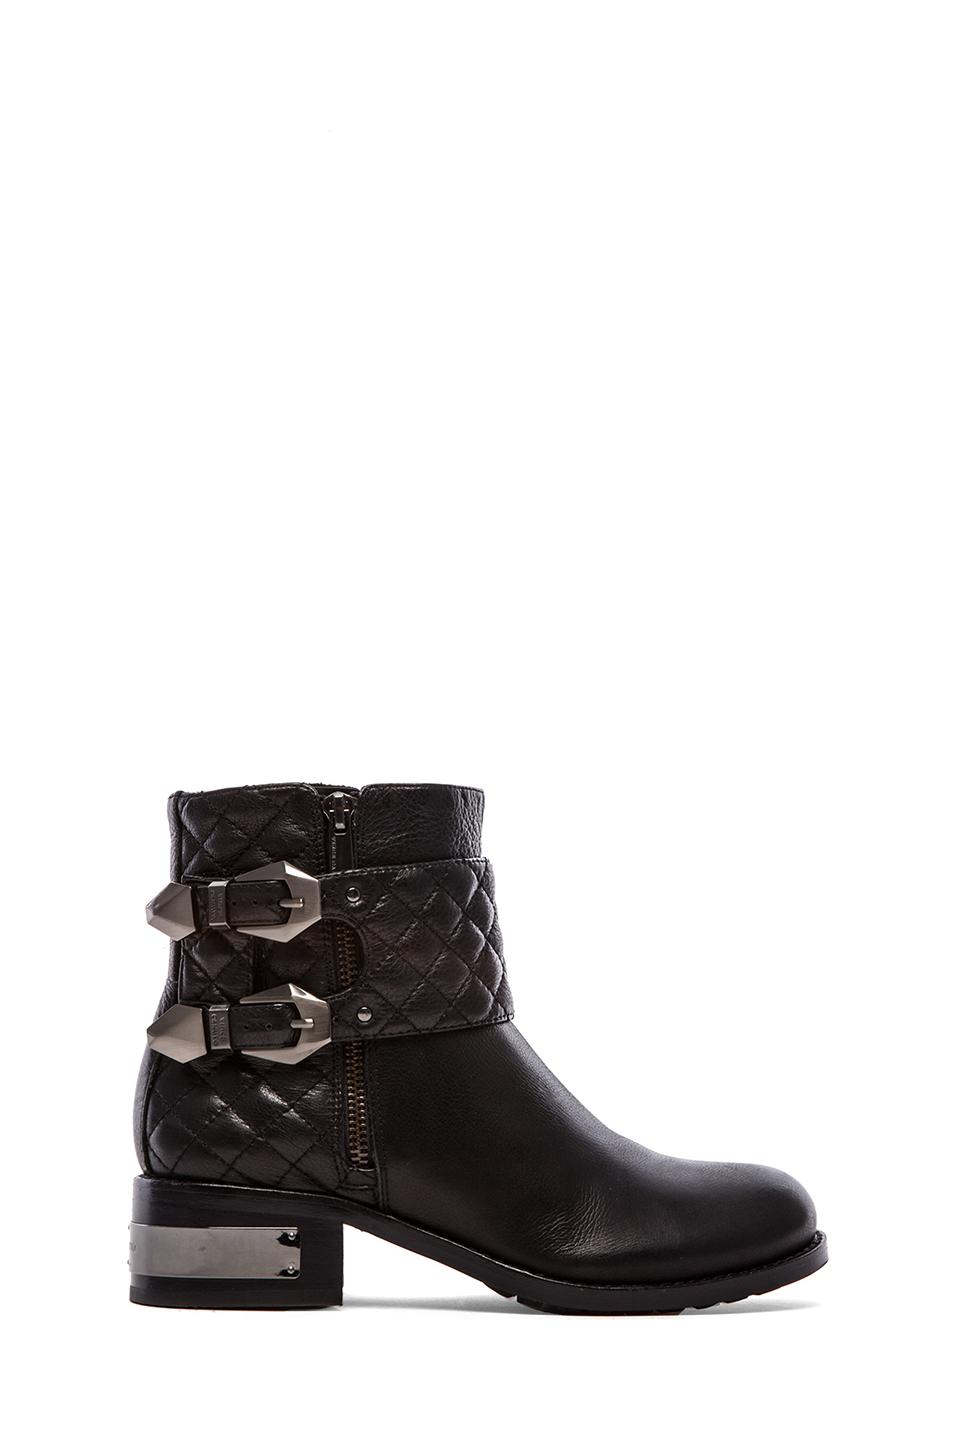 Vince Camuto Winta Boot in Black